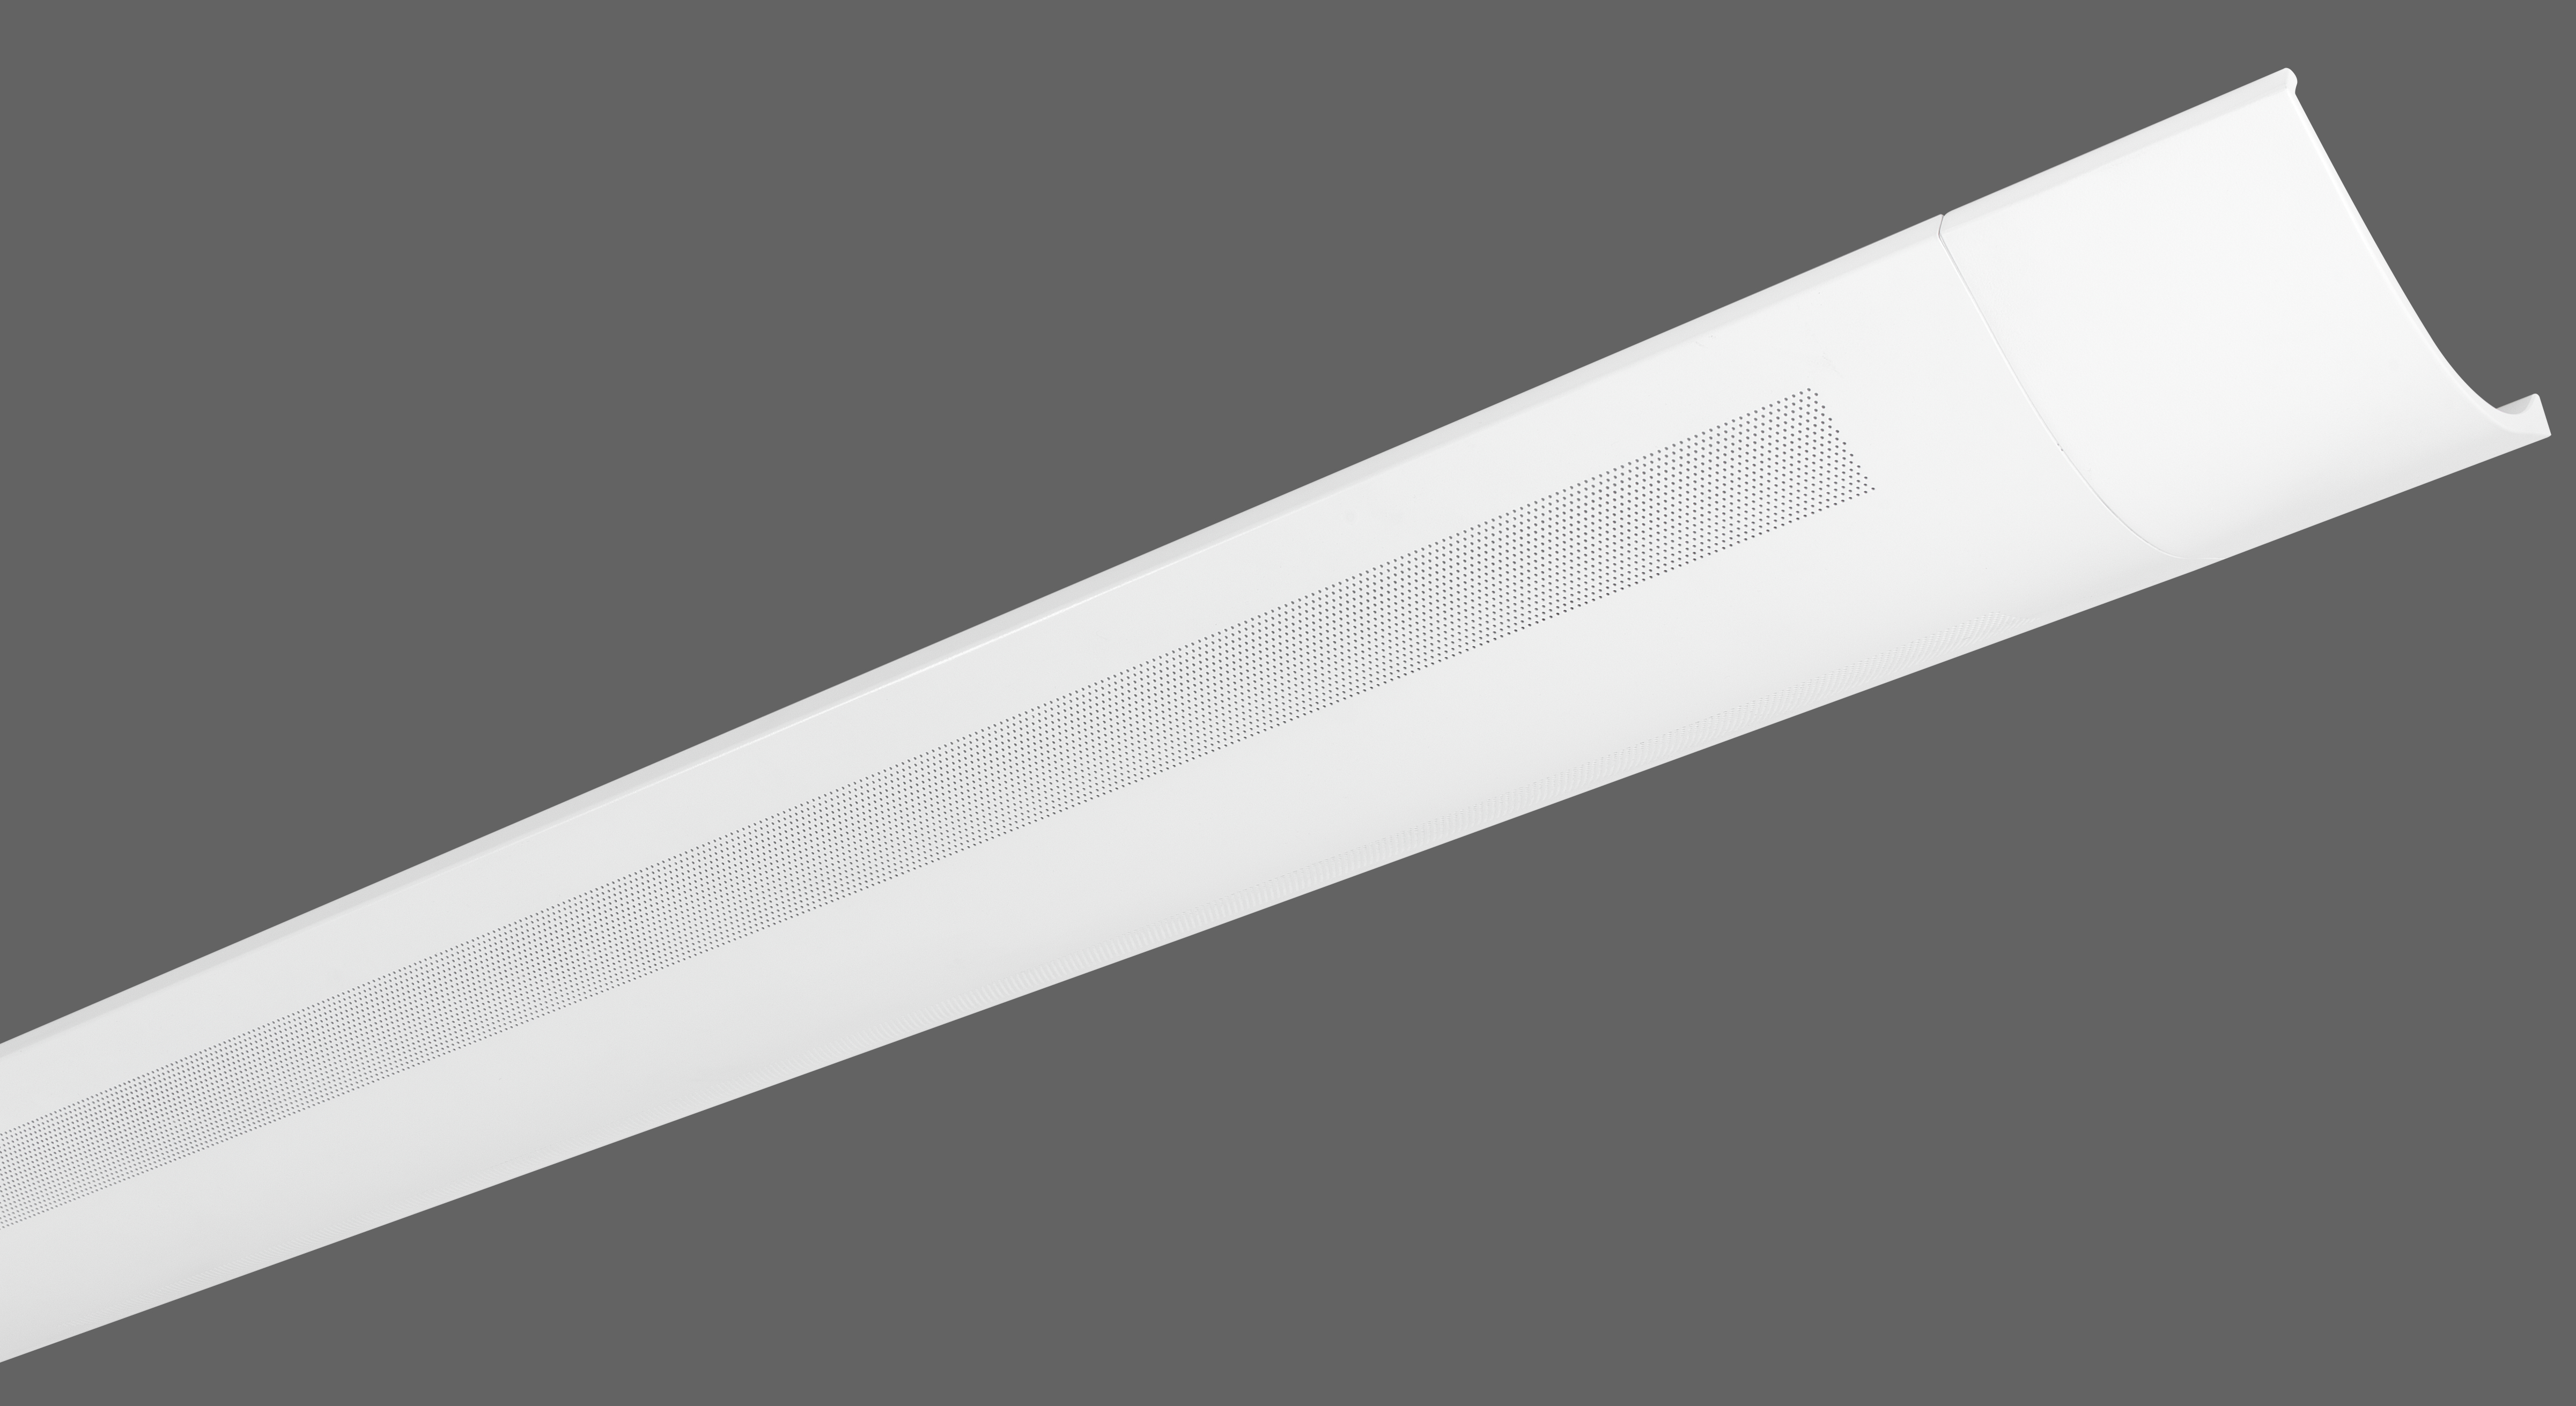 Alera Lighting's new Curv LED is an efficient lighting solution for office, education, healthcare and municipal buildings.